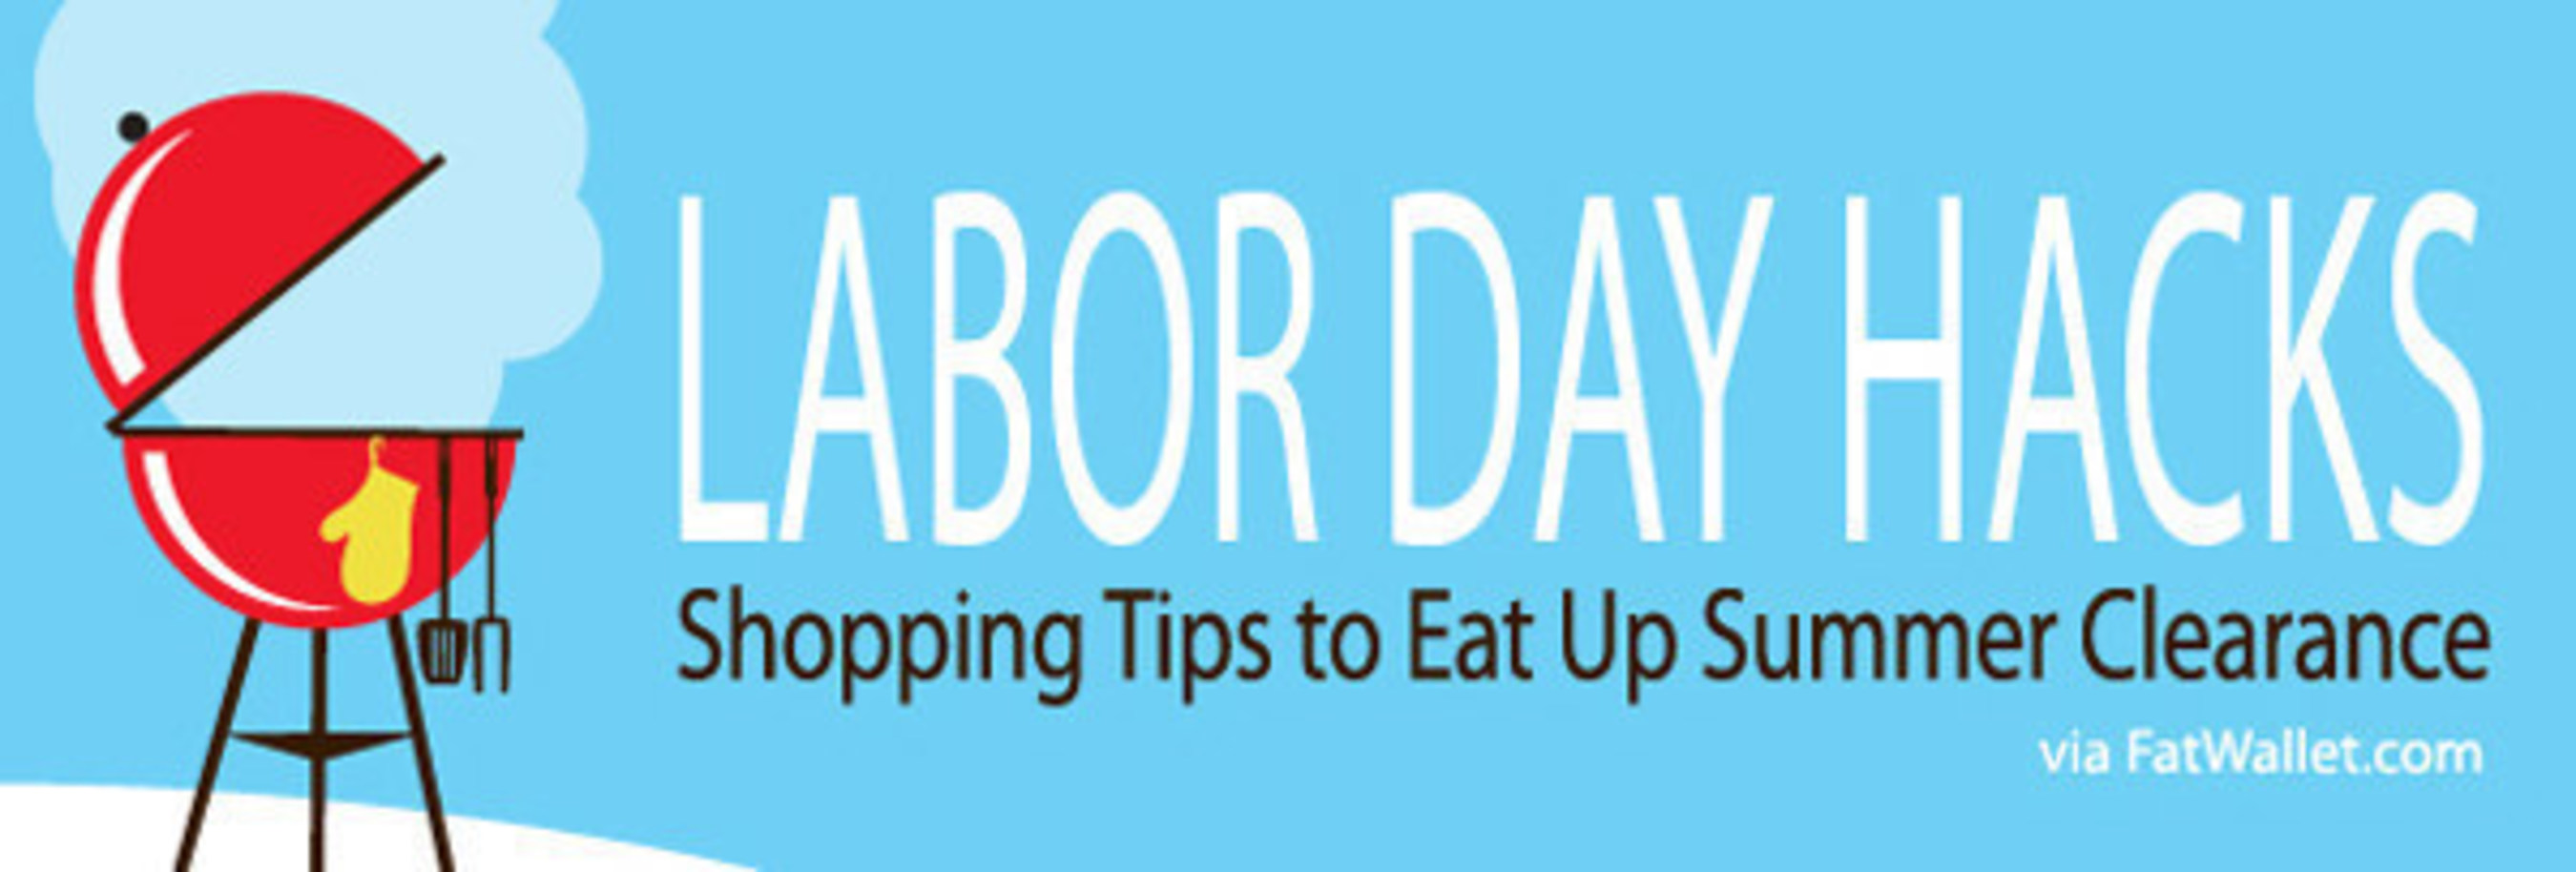 Labor Day deals kick-off summer clearance as stores prep for holiday